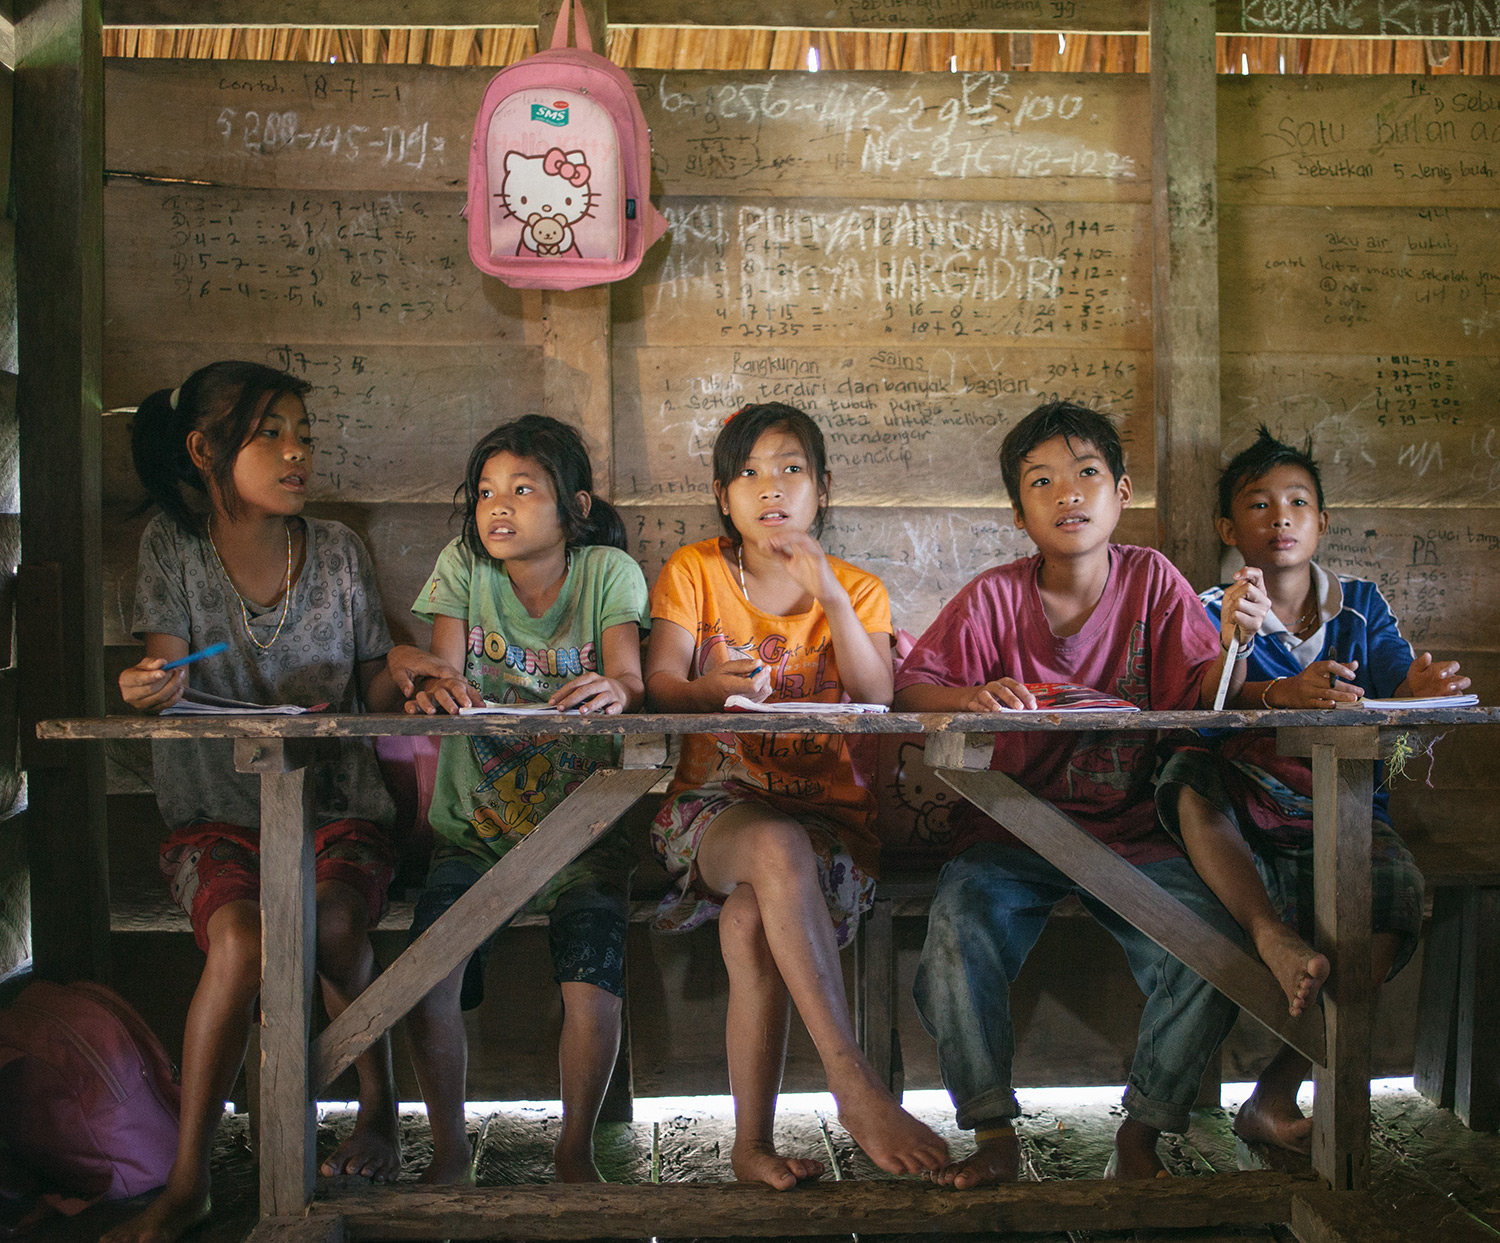 The Mentawai jungle school in the jungle near Buttui initiated by a Christian mission.